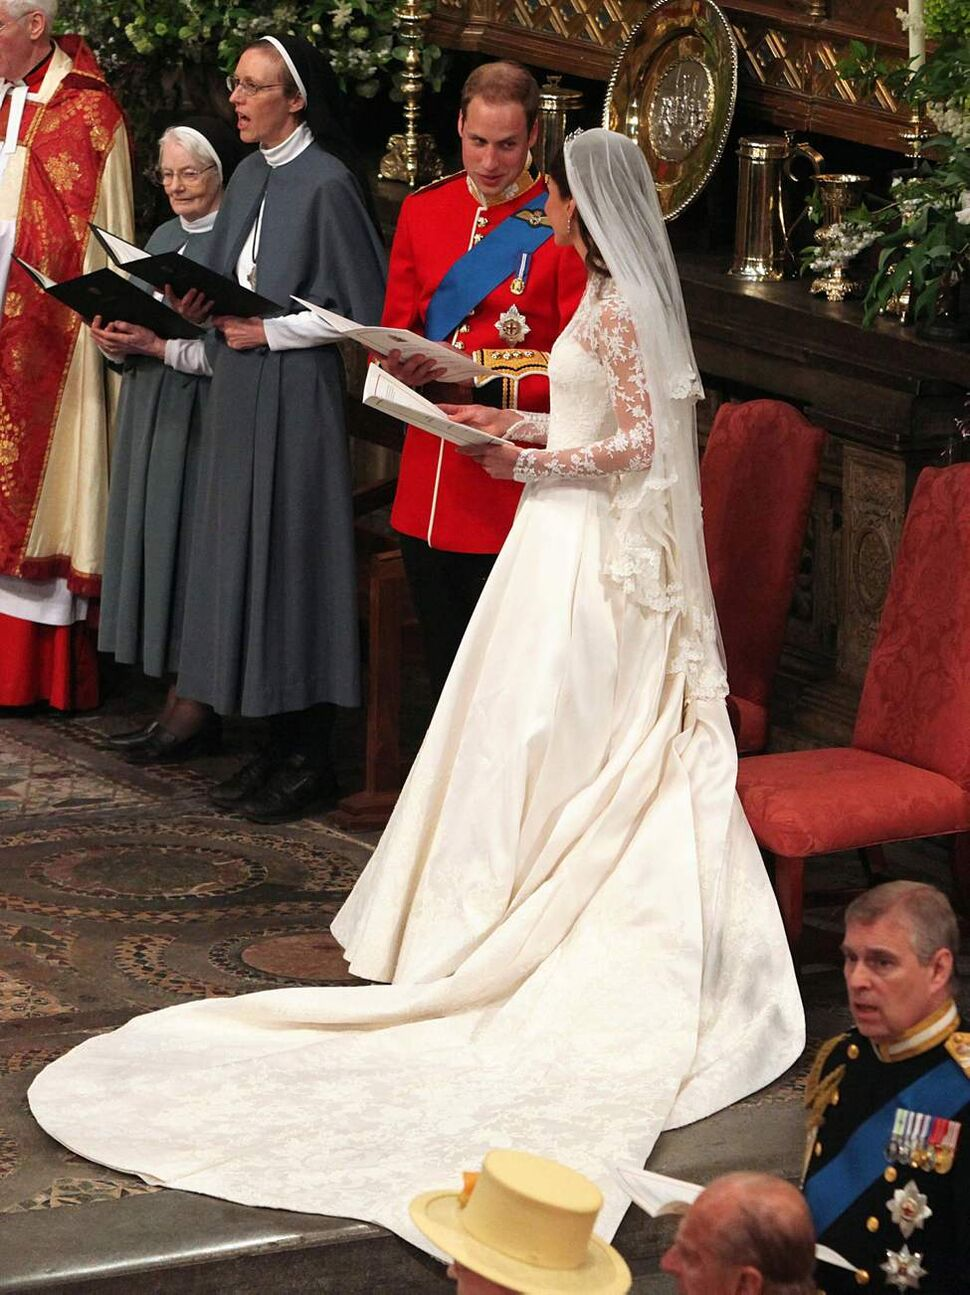 Prince William and Kate Middleton join in singing during their wedding at Westminster Abbey in London, England, on Friday, April 29, 2011. (Abaca Press/MCT) (Tribune Media MCT)